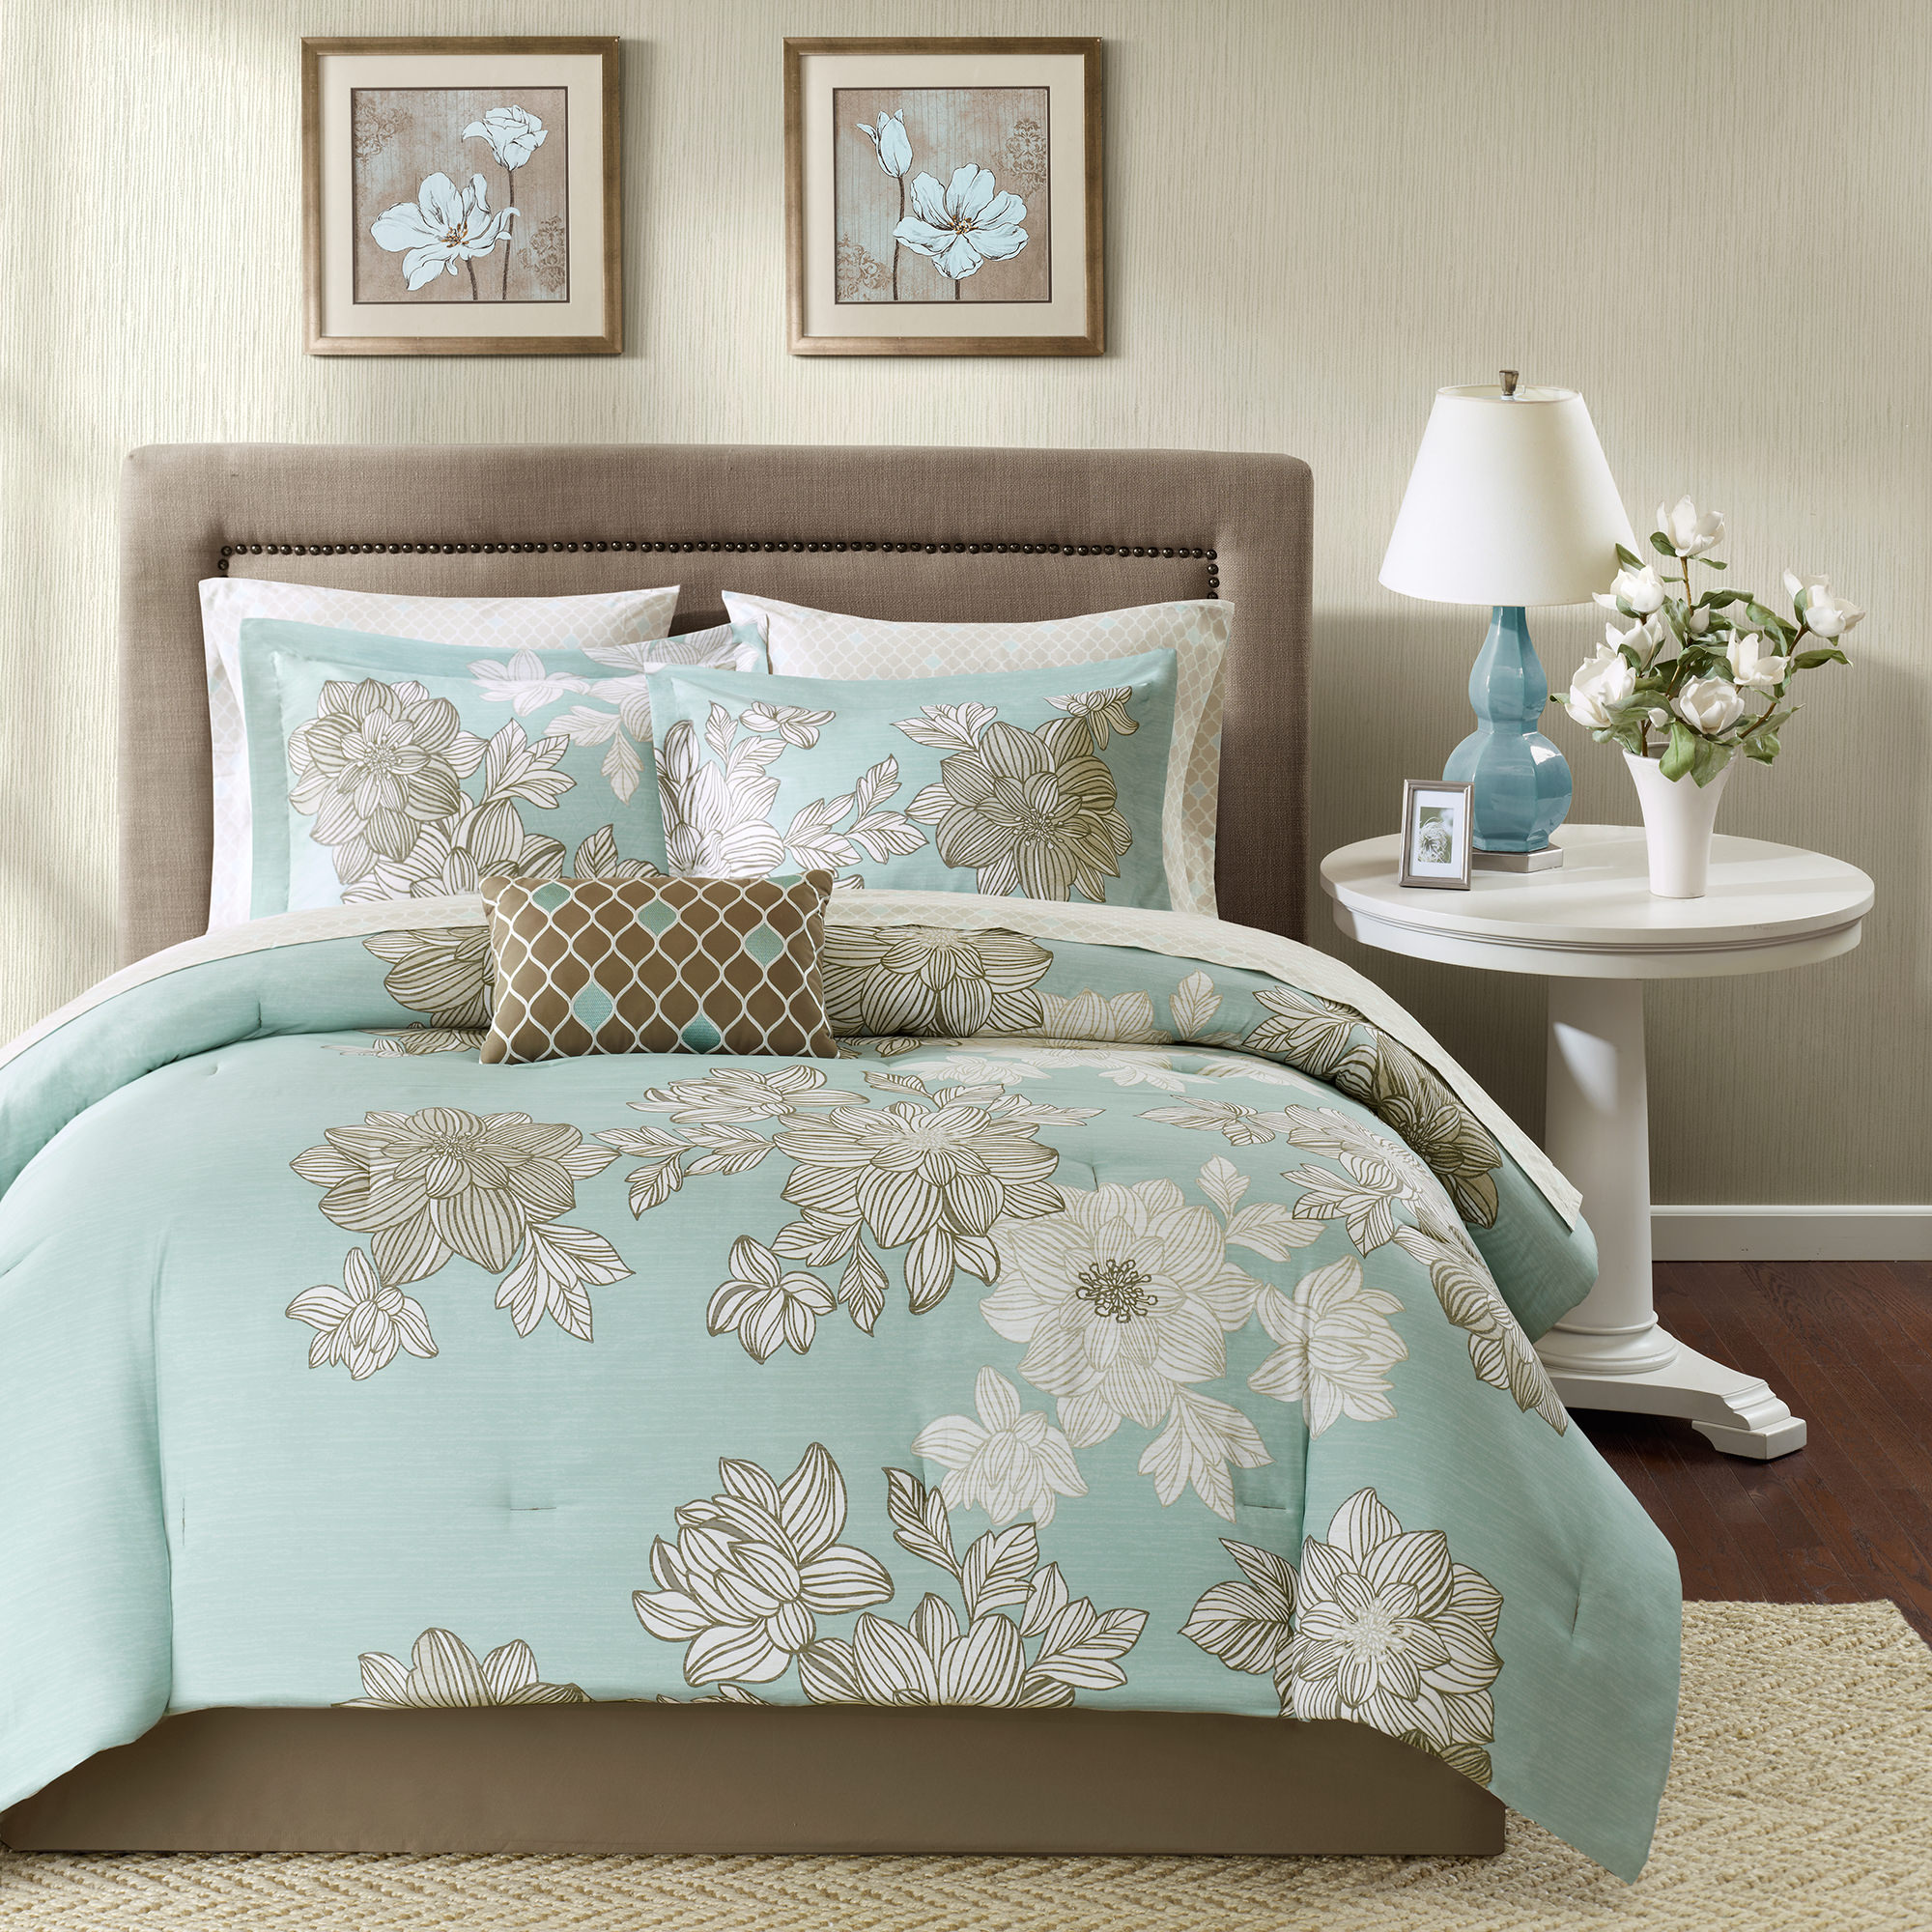 Home Essence Cornell Bed in a Bag Comforter Bedding Set